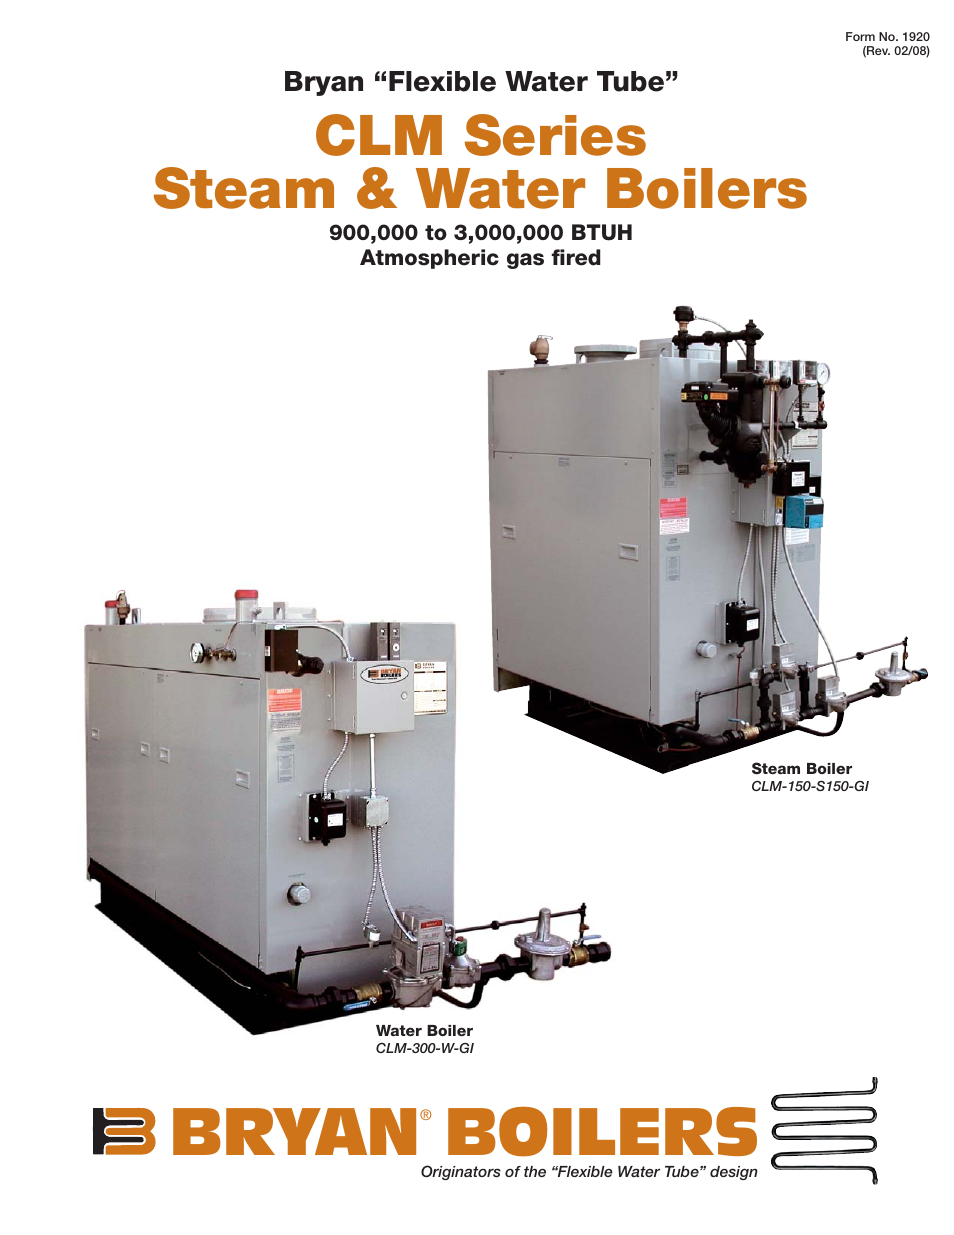 bryan boilers clm 150 s150 gi user manual 4 pages also for clm